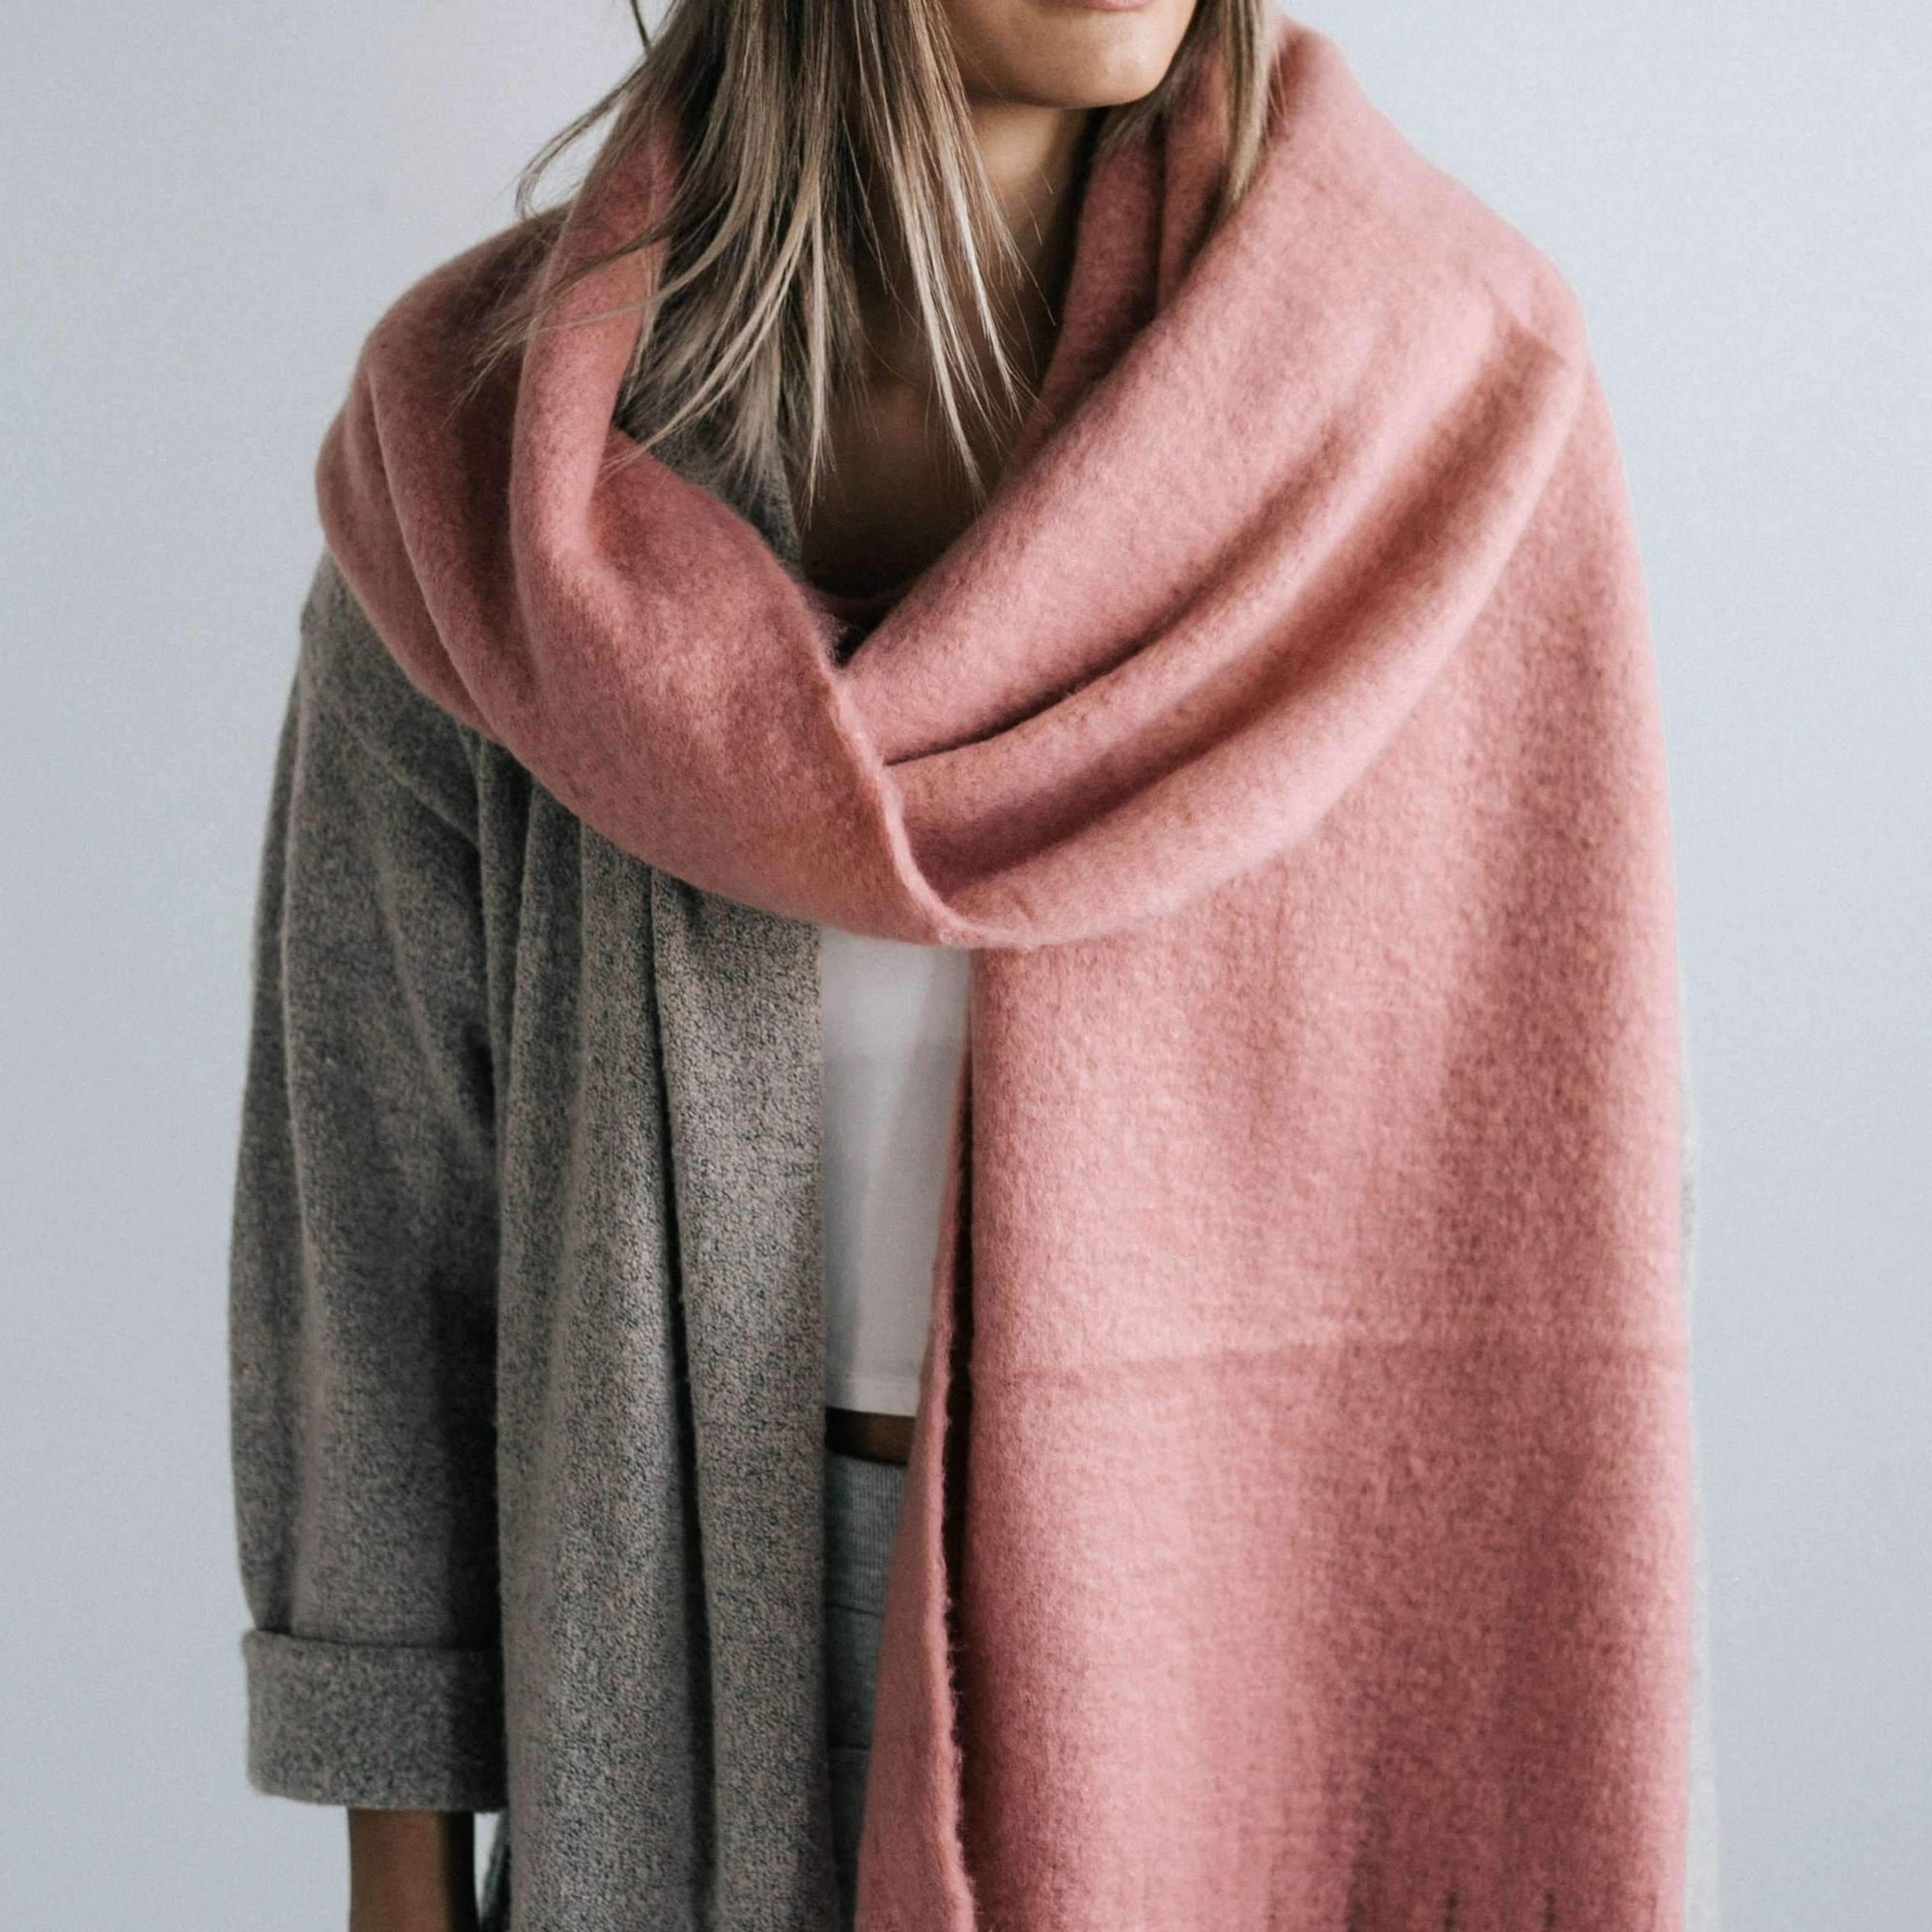 GIGI PIP Hats for Women- Blanket Scarf - Pink-Scarf